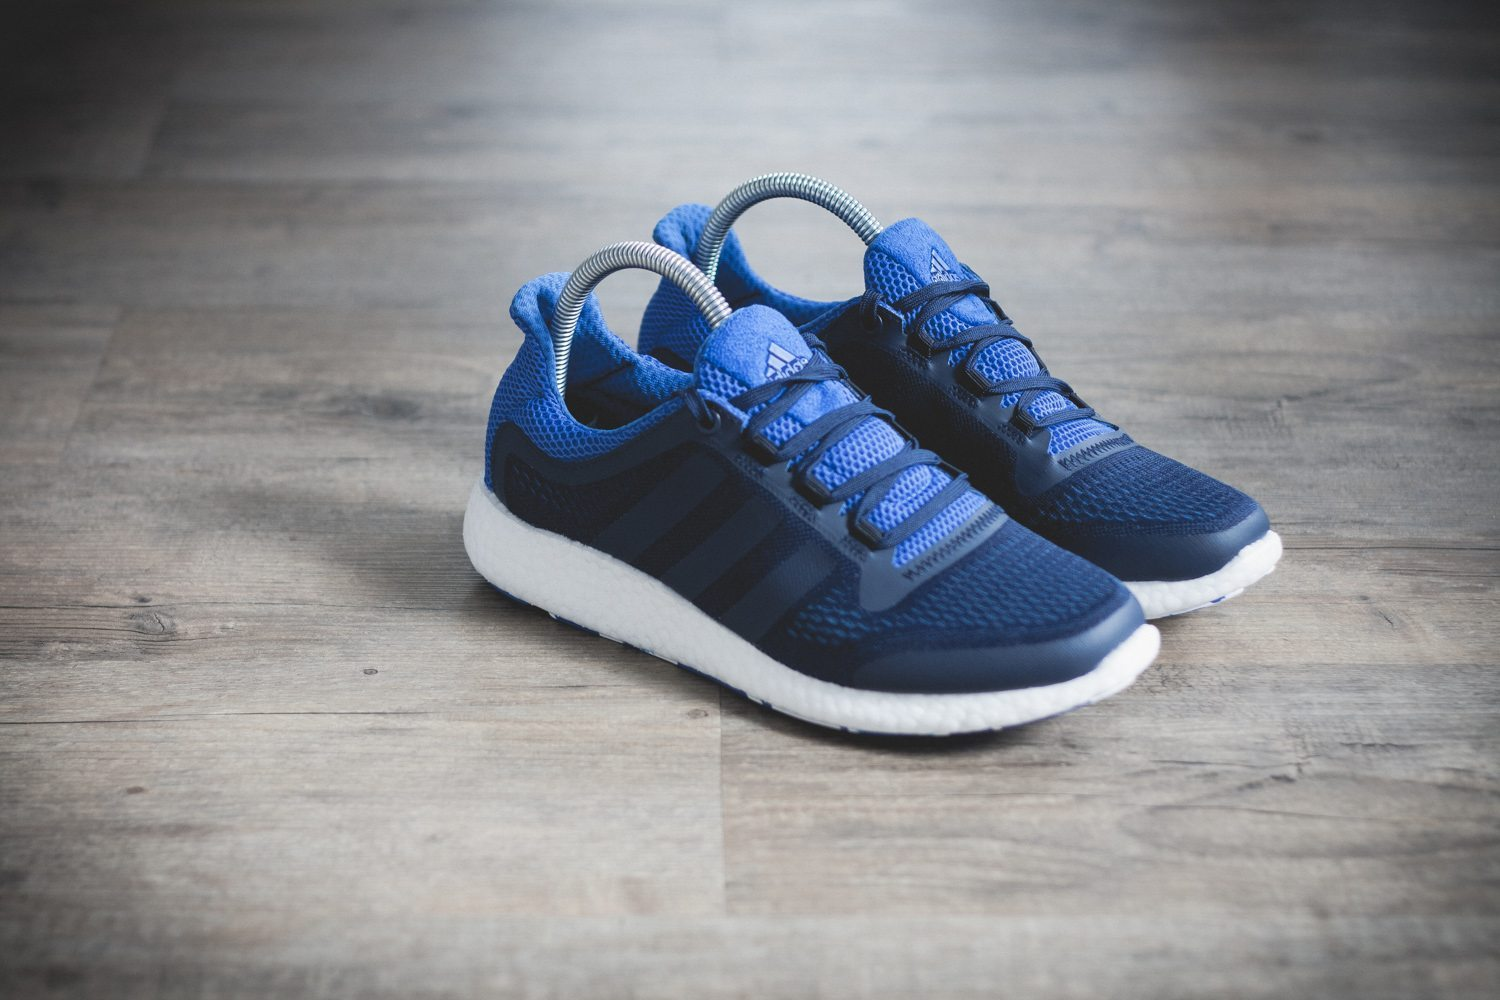 adidas Pure Boost Chill Blue White Review 2